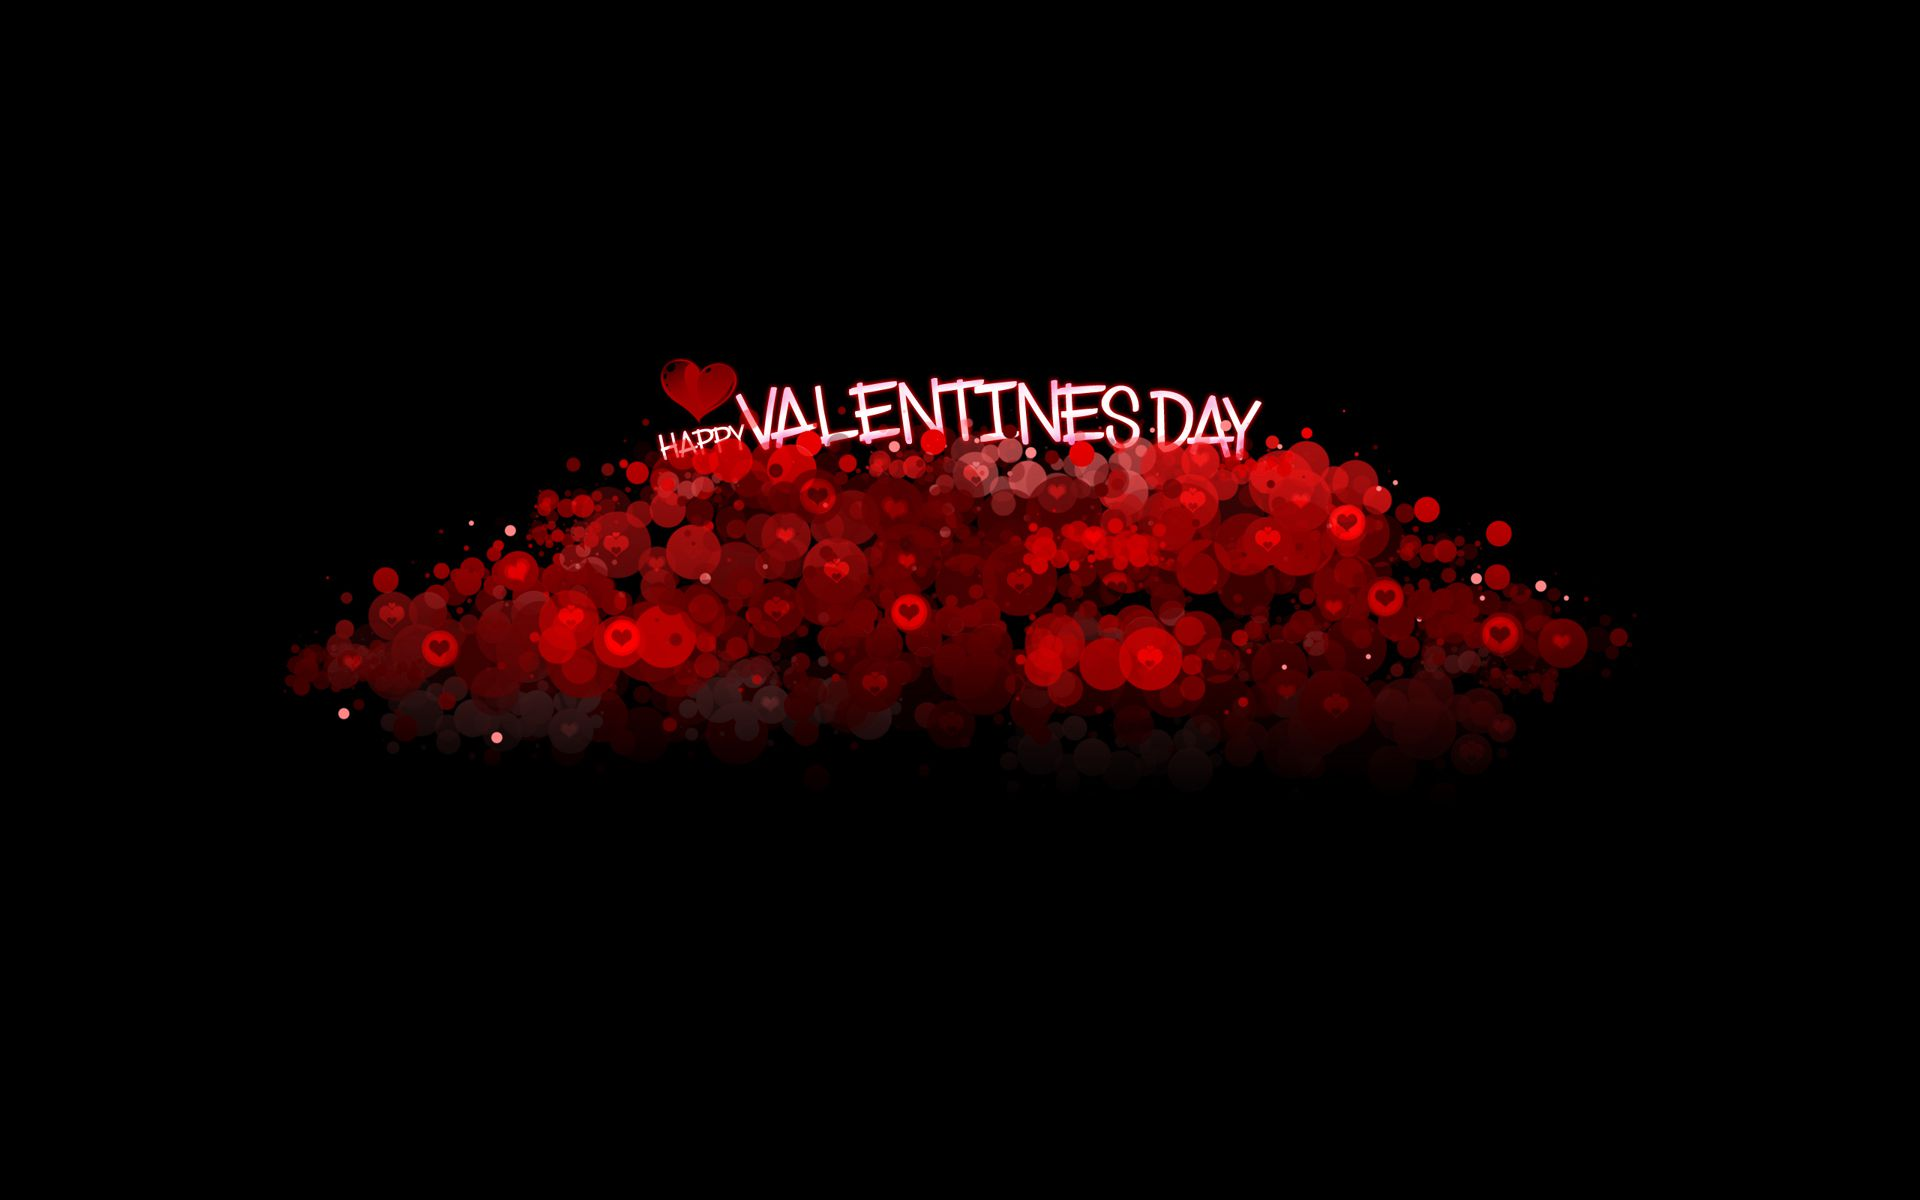 Happy Valentines Day Wallpaper 12